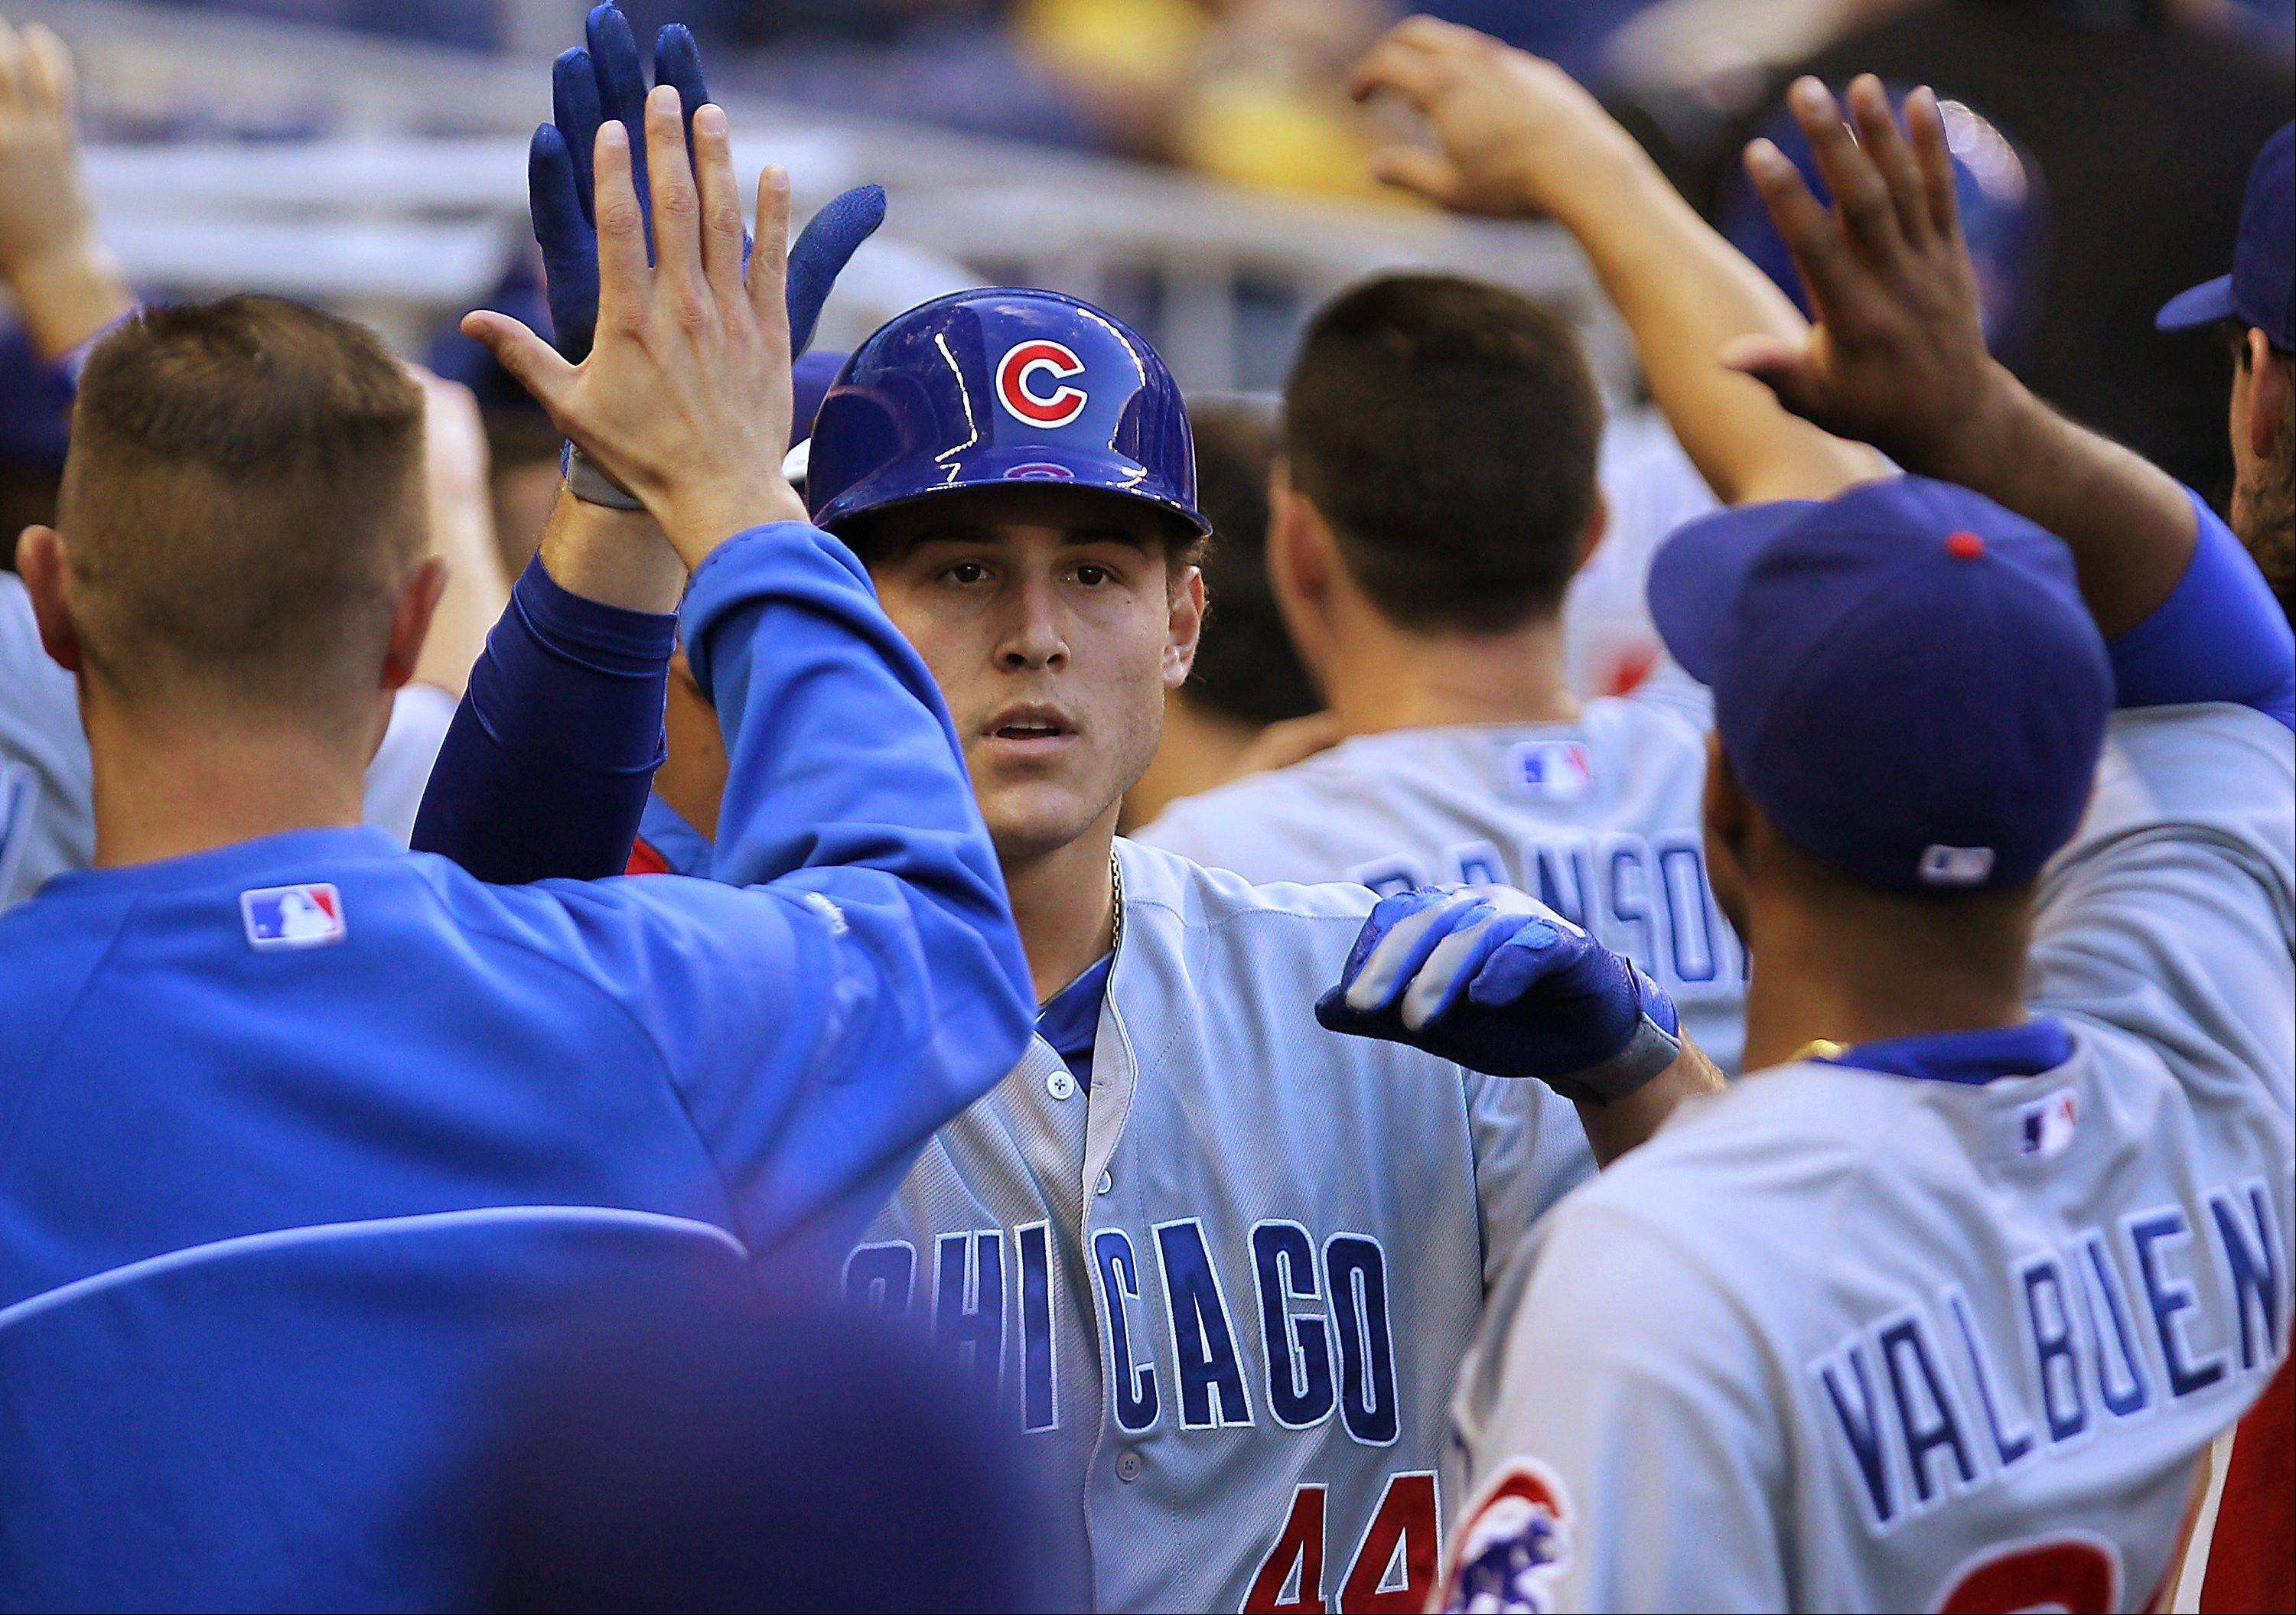 Chicago Cubs first baseman Anthony Rizzo, center, is congratulate by teammates after hit two-run home run during the first inning of their baseball game against the Miami Marlins in Miami on Friday, April 26, 2013. (AP Photo/El Nuevo Herald, David Santiago) MAGS OUT.